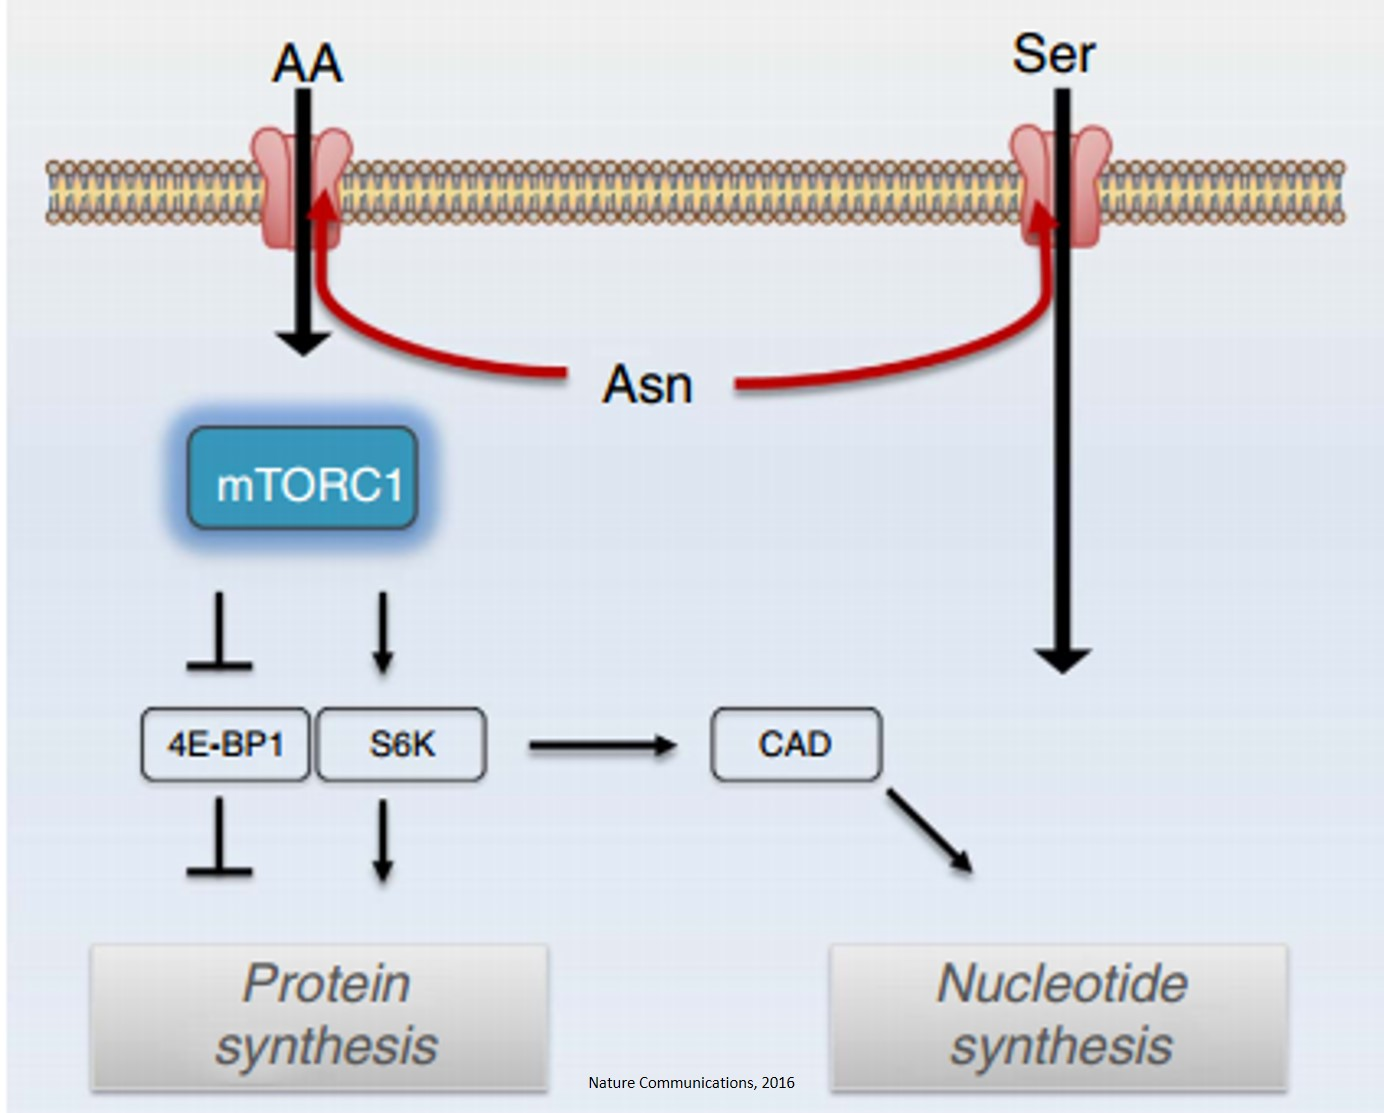 Amino acid exchange factor and cancer cell proliferation